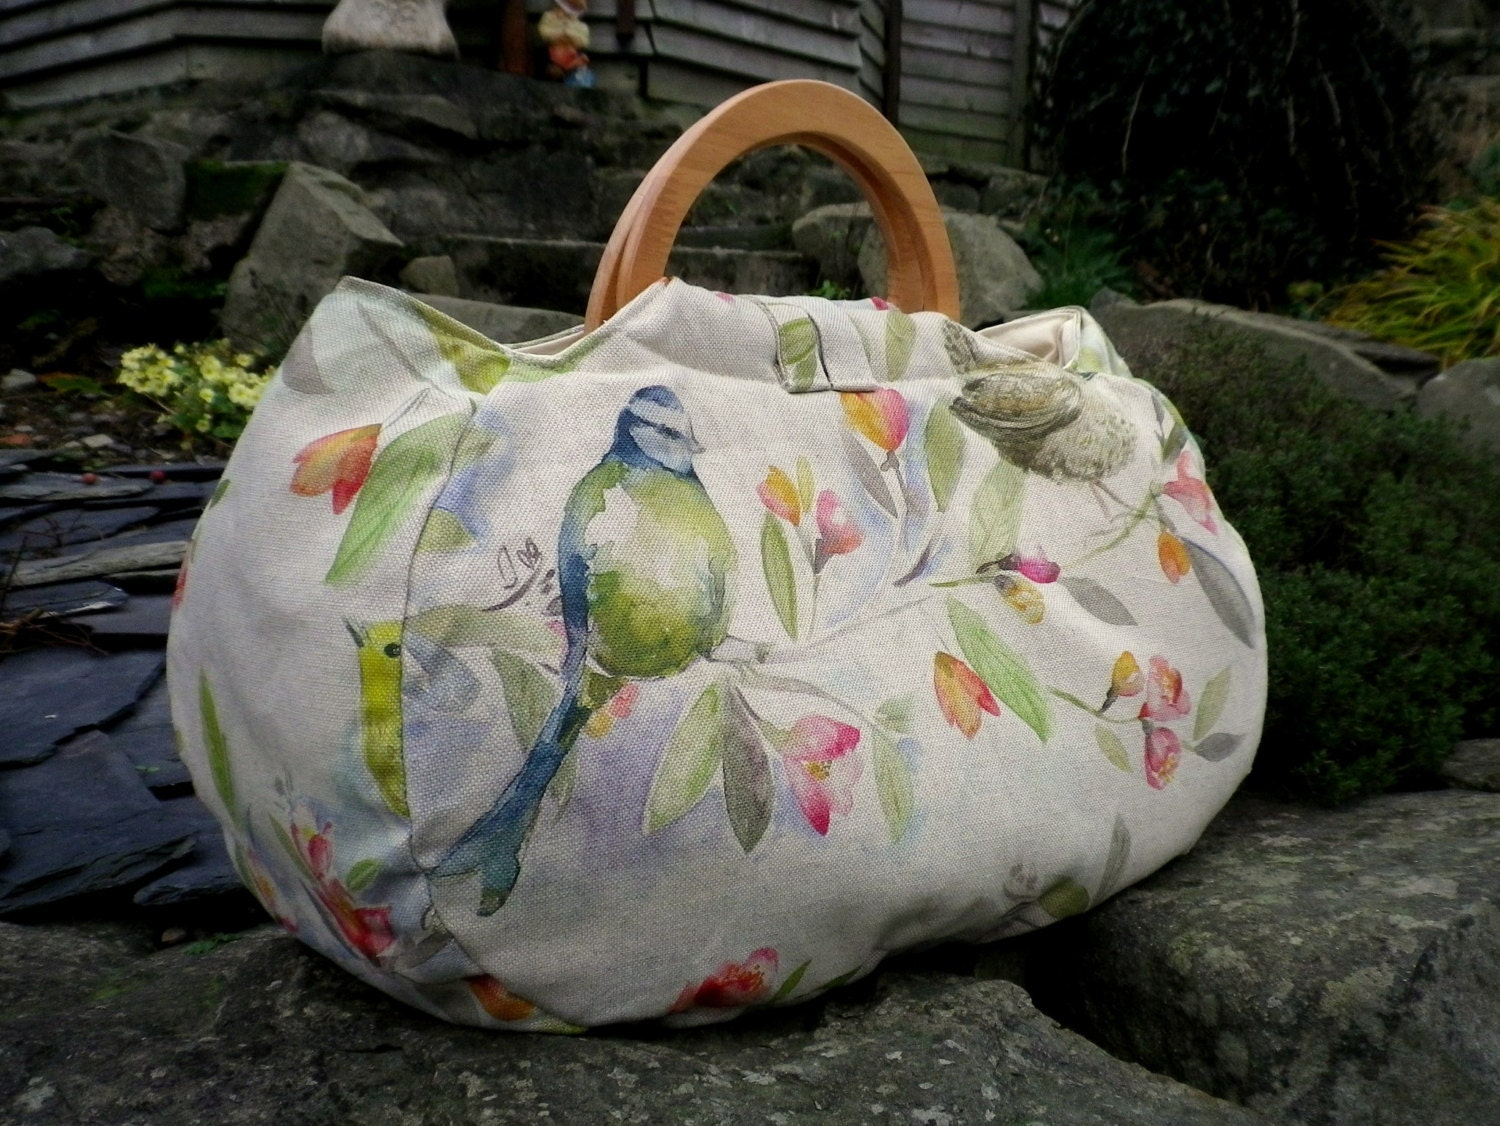 Knitting Project Bags Uk : Large project bag bird fabric knitting